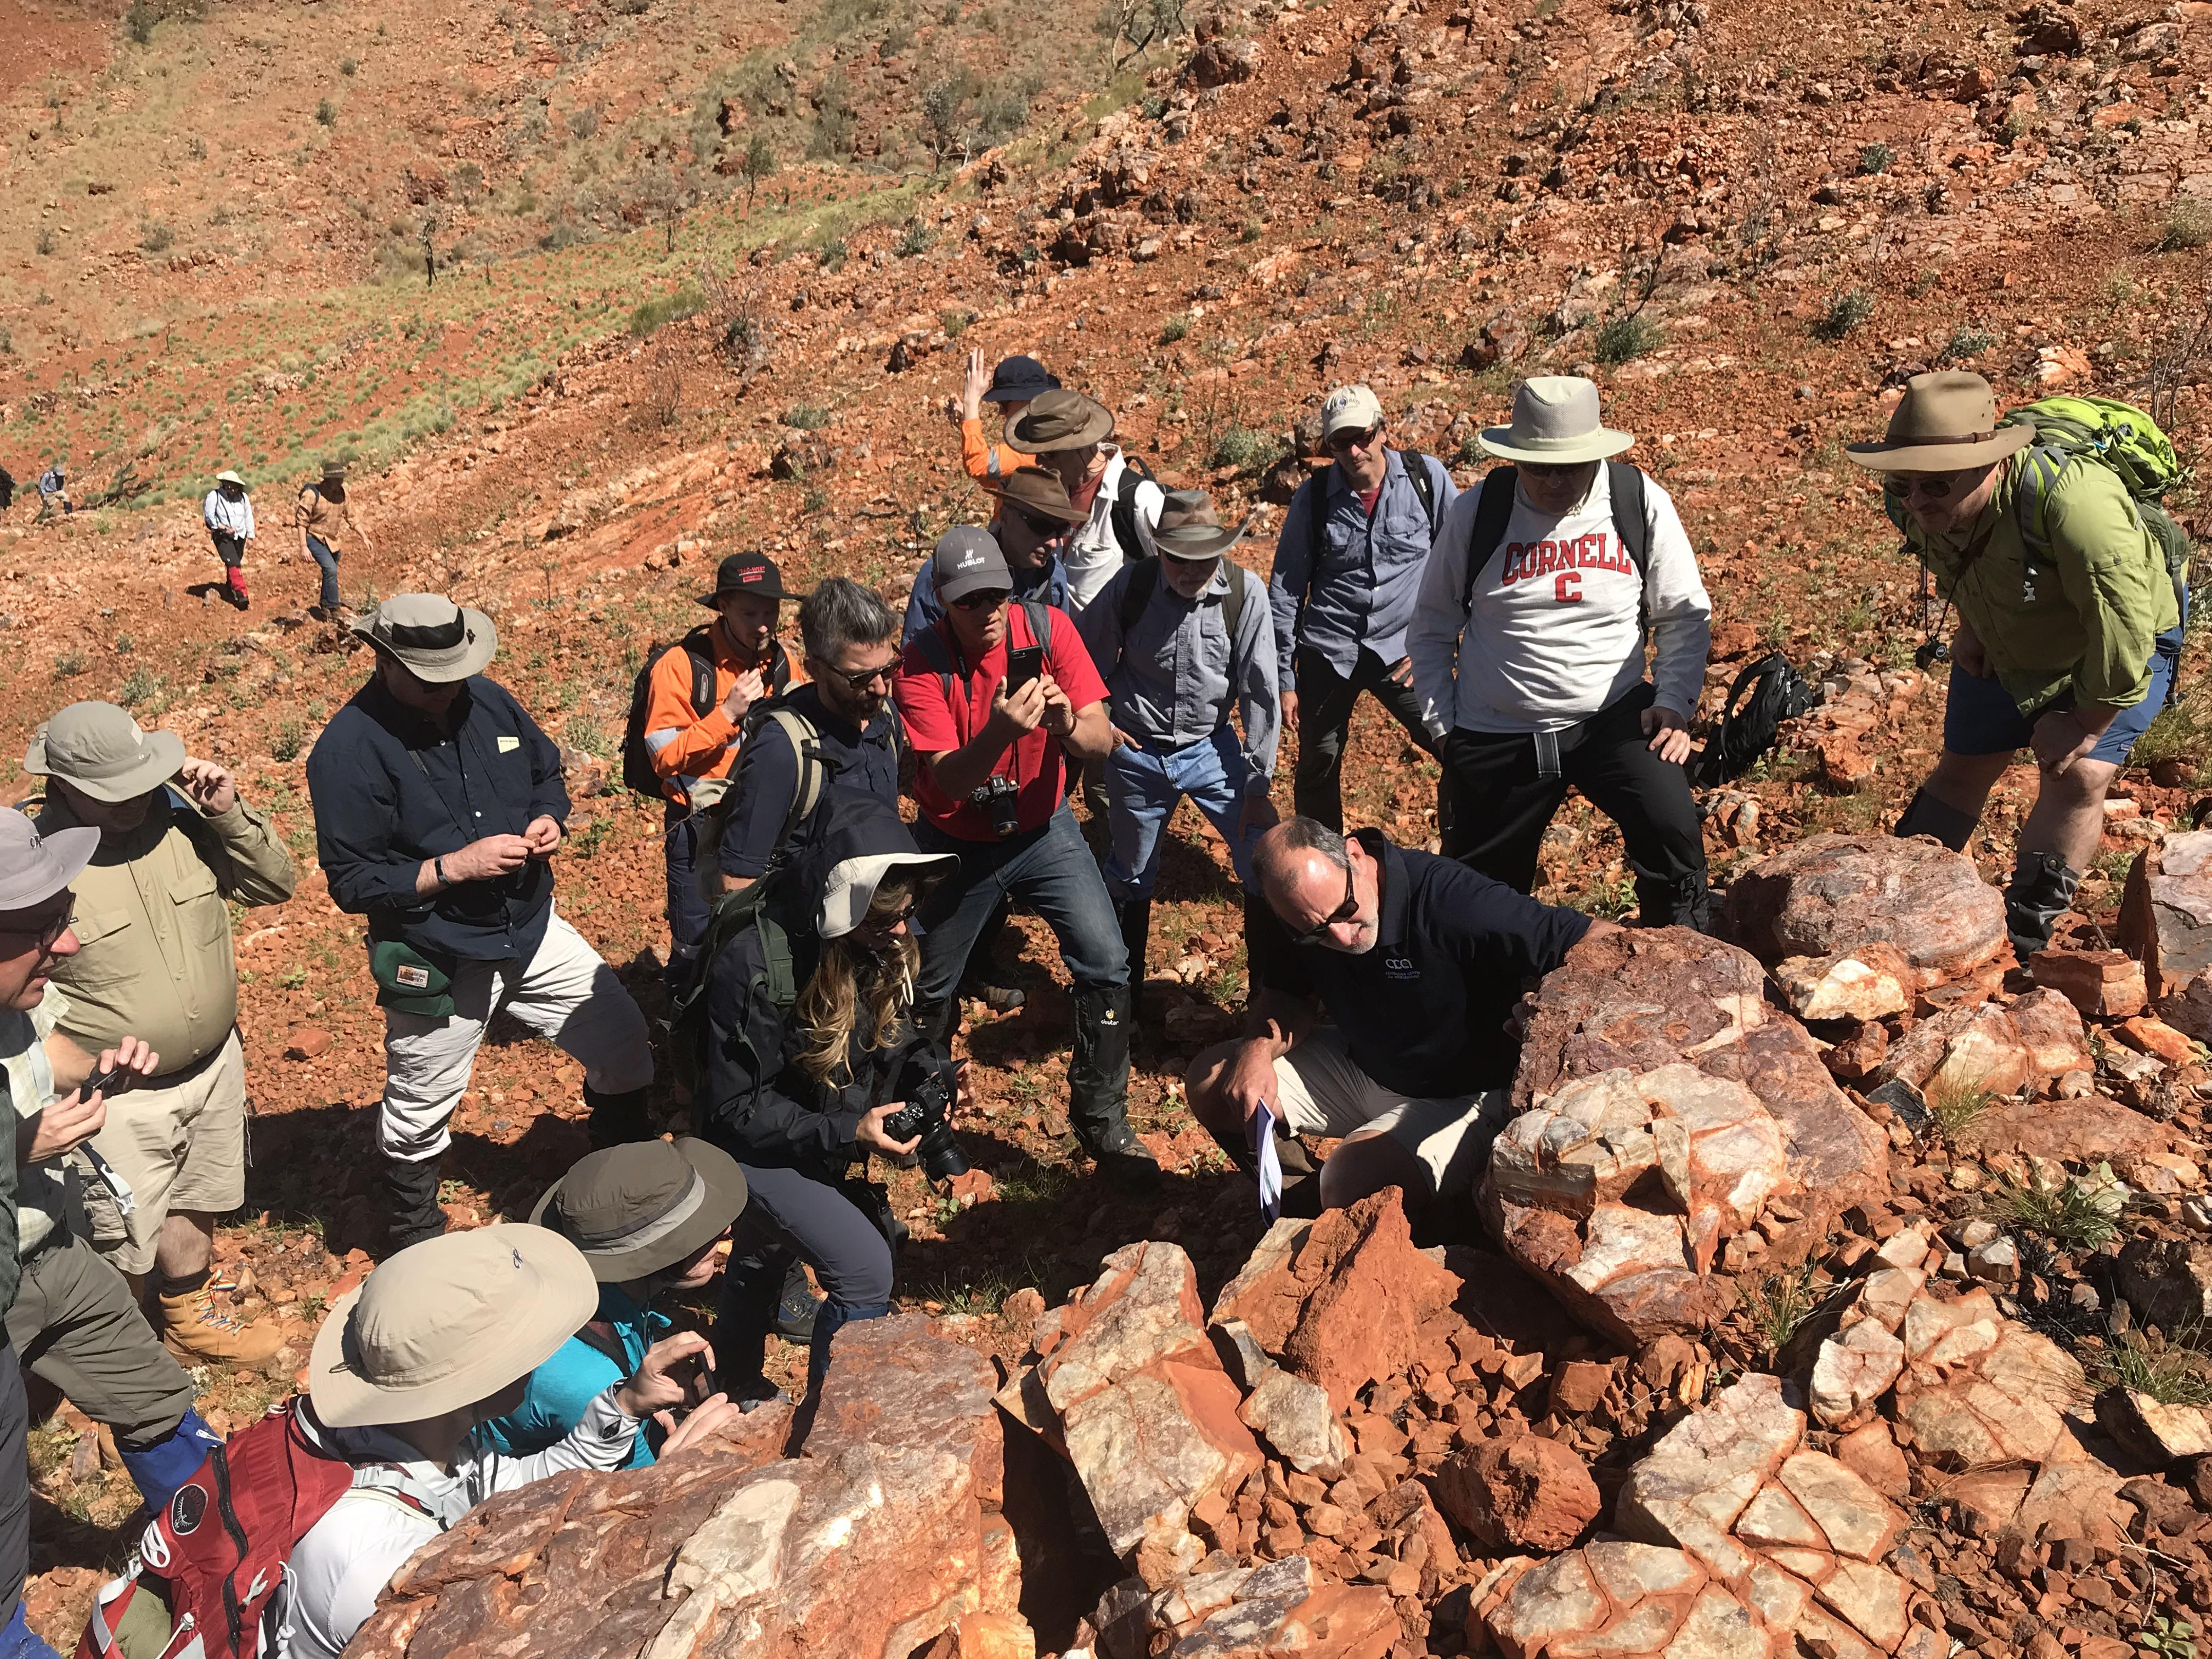 Scientists from NASAs Mars 2020 and ESAs ExoMars projects study stromatolites, the oldest confirmed fossilized lifeforms on Earth, in the Pilbara region of North West Australia.